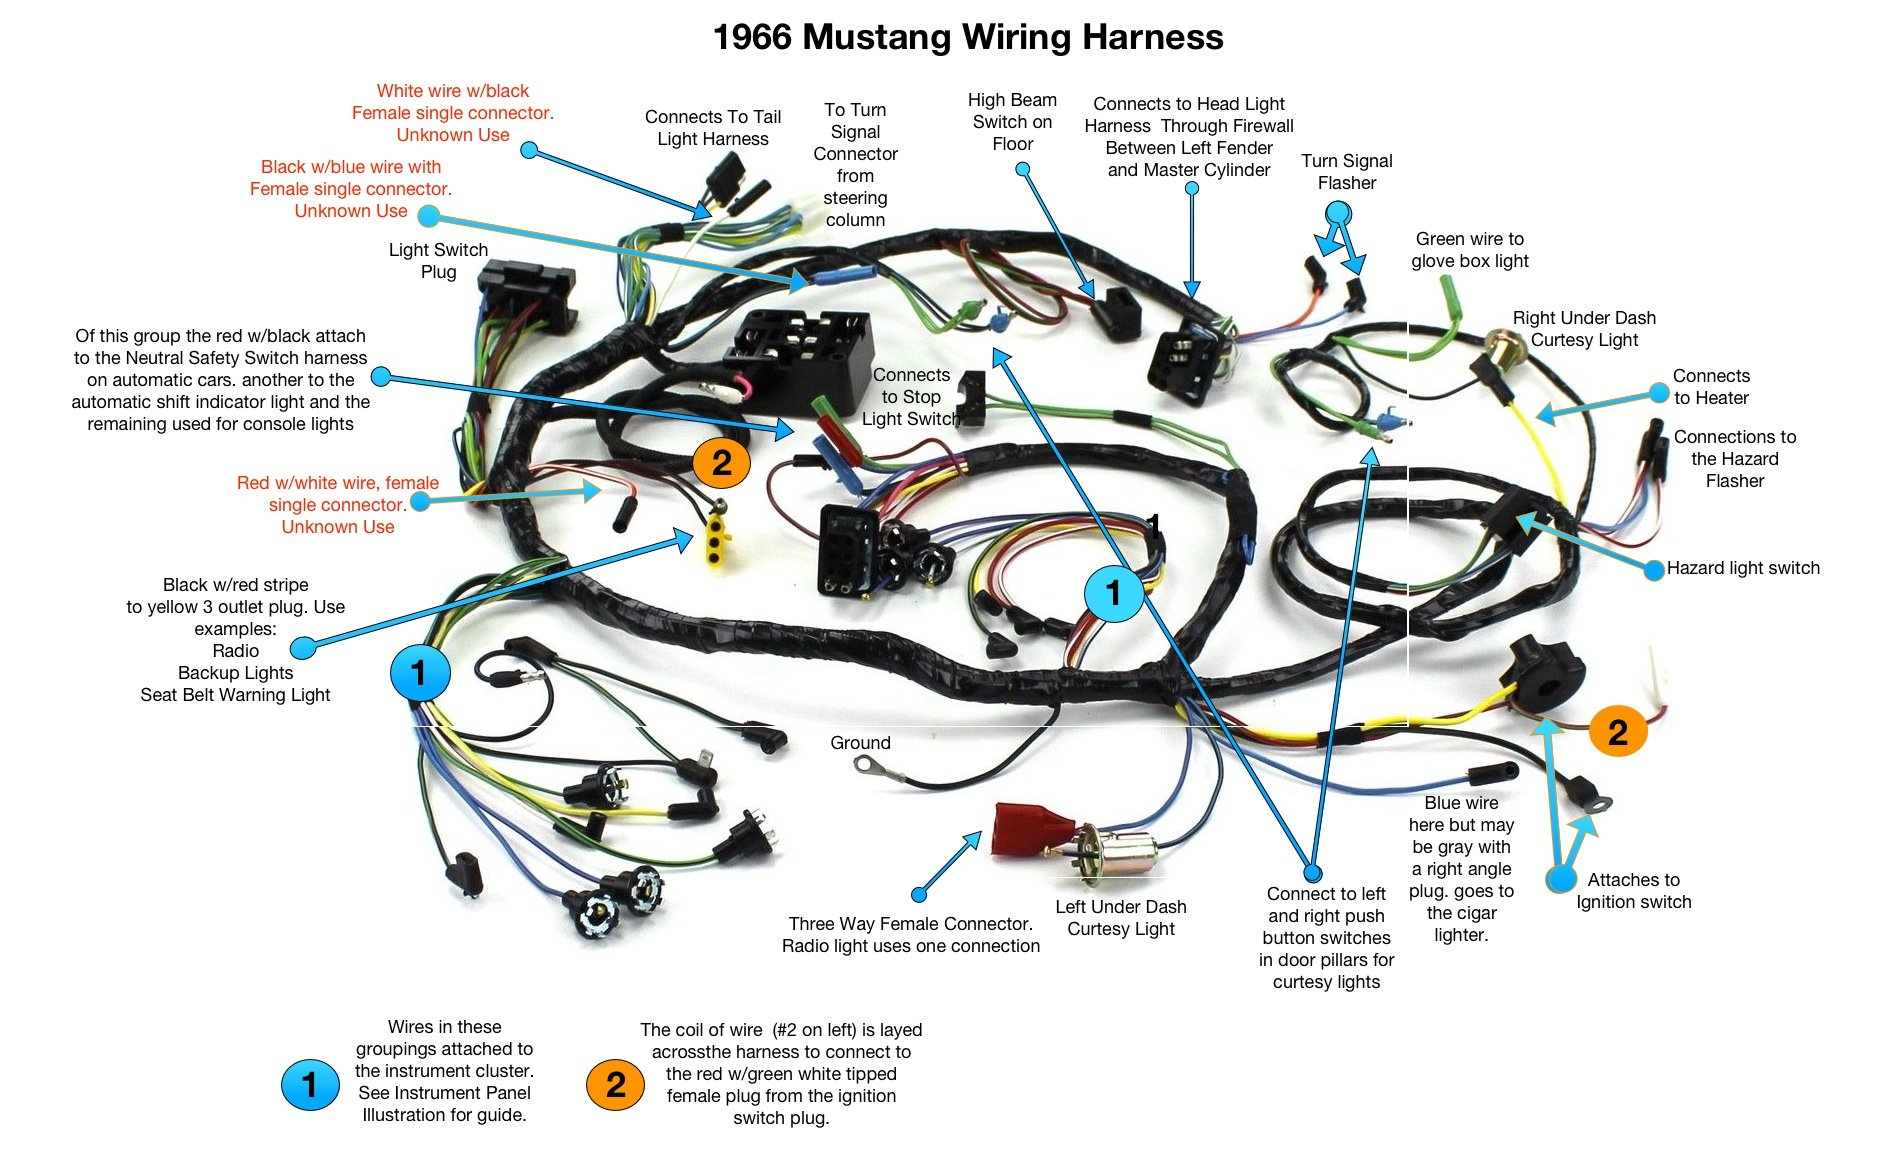 66 wiring harness diagram ford mustang forum rh allfordmustangs com